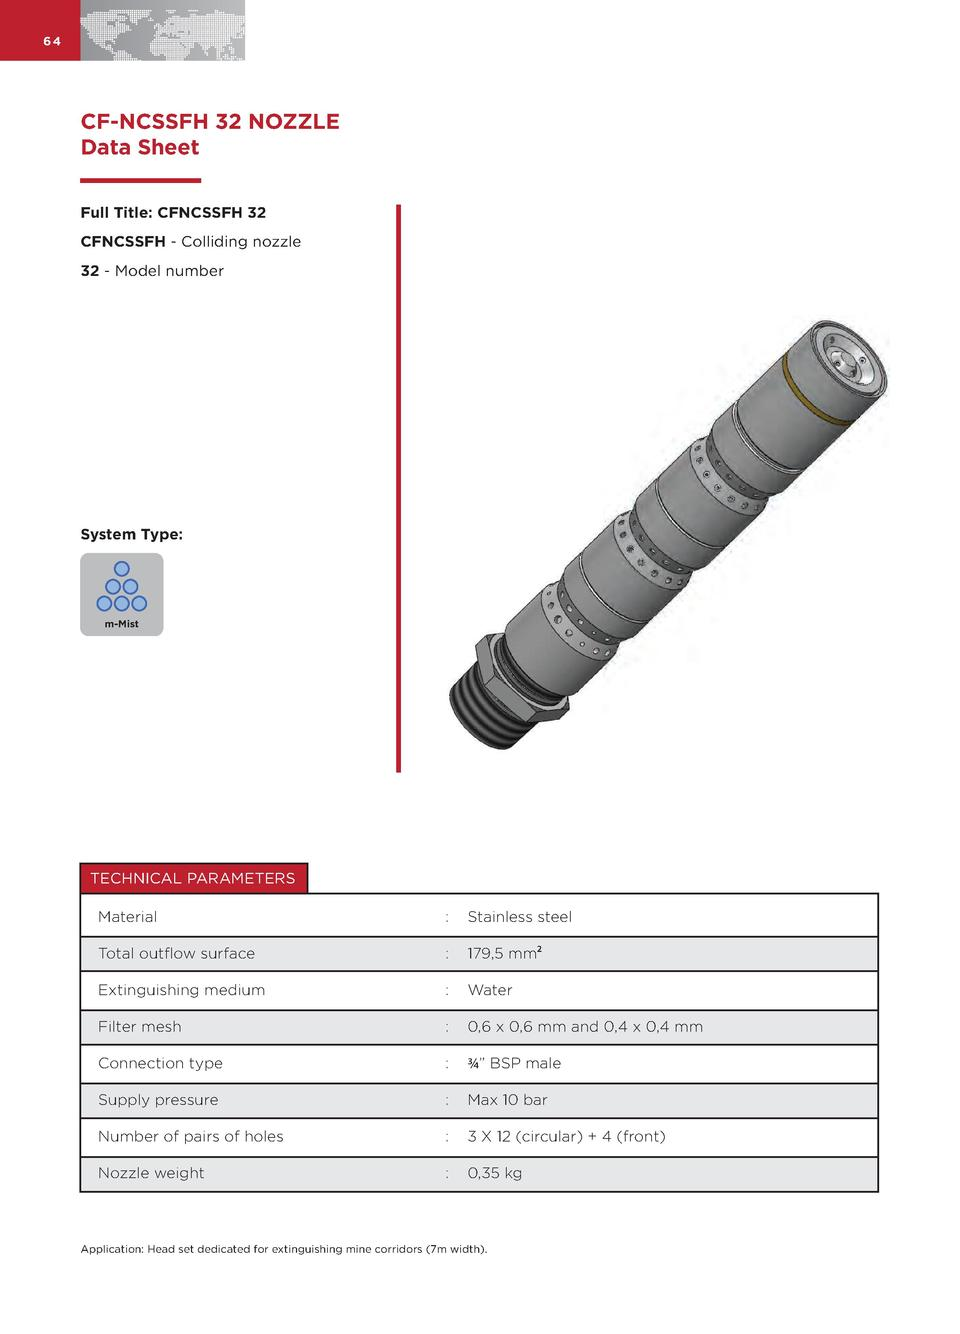 64  CF-NCSSFH 32 NOZZLE Data Sheet Full Title  CFNCSSFH 32 CFNCSSFH - Colliding nozzle 32 - Model number  System Type   m-...